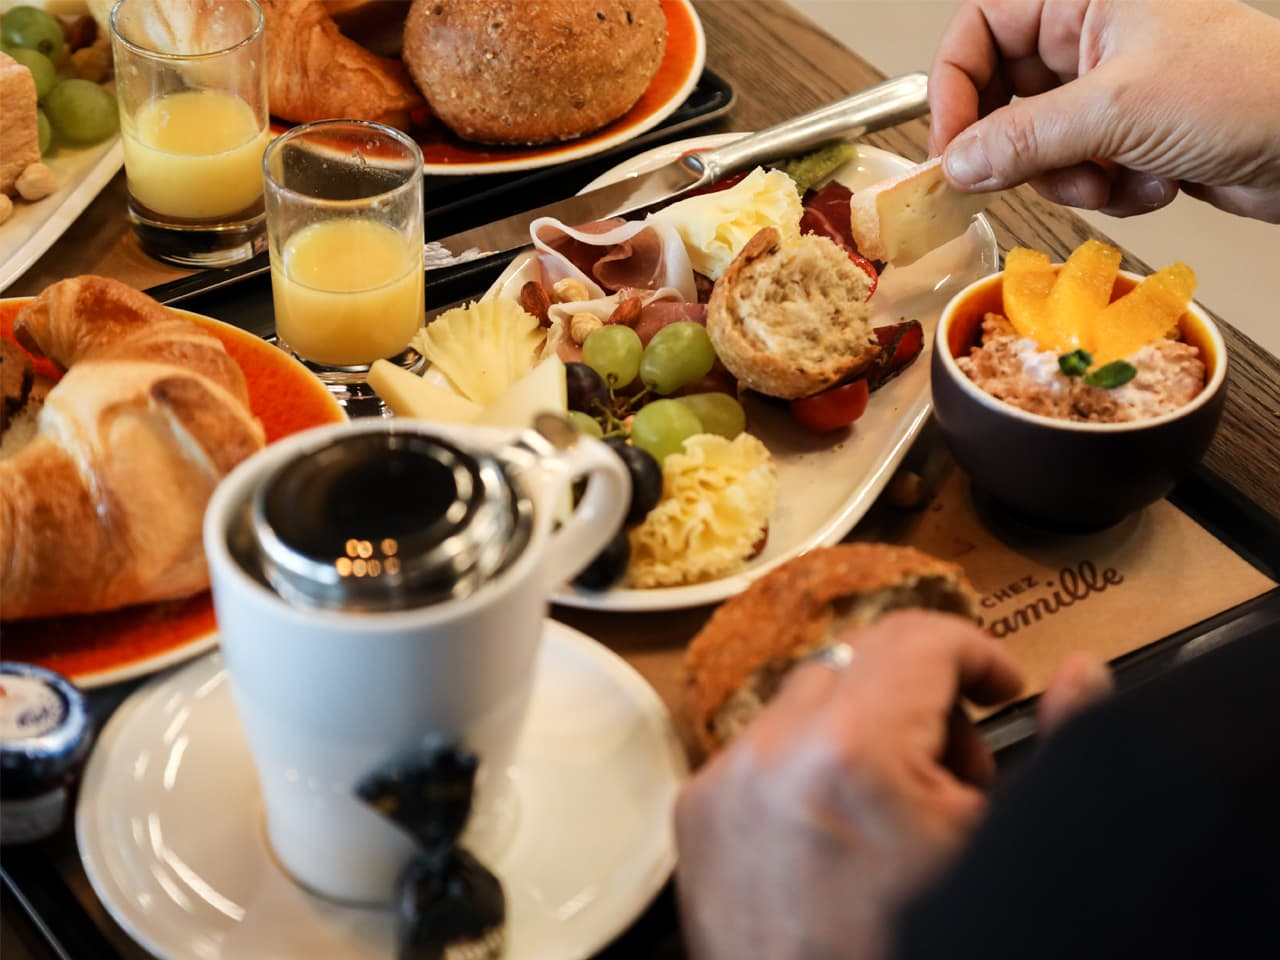 Ausflug: 1. August-Brunch CHEZ Camille Bloch